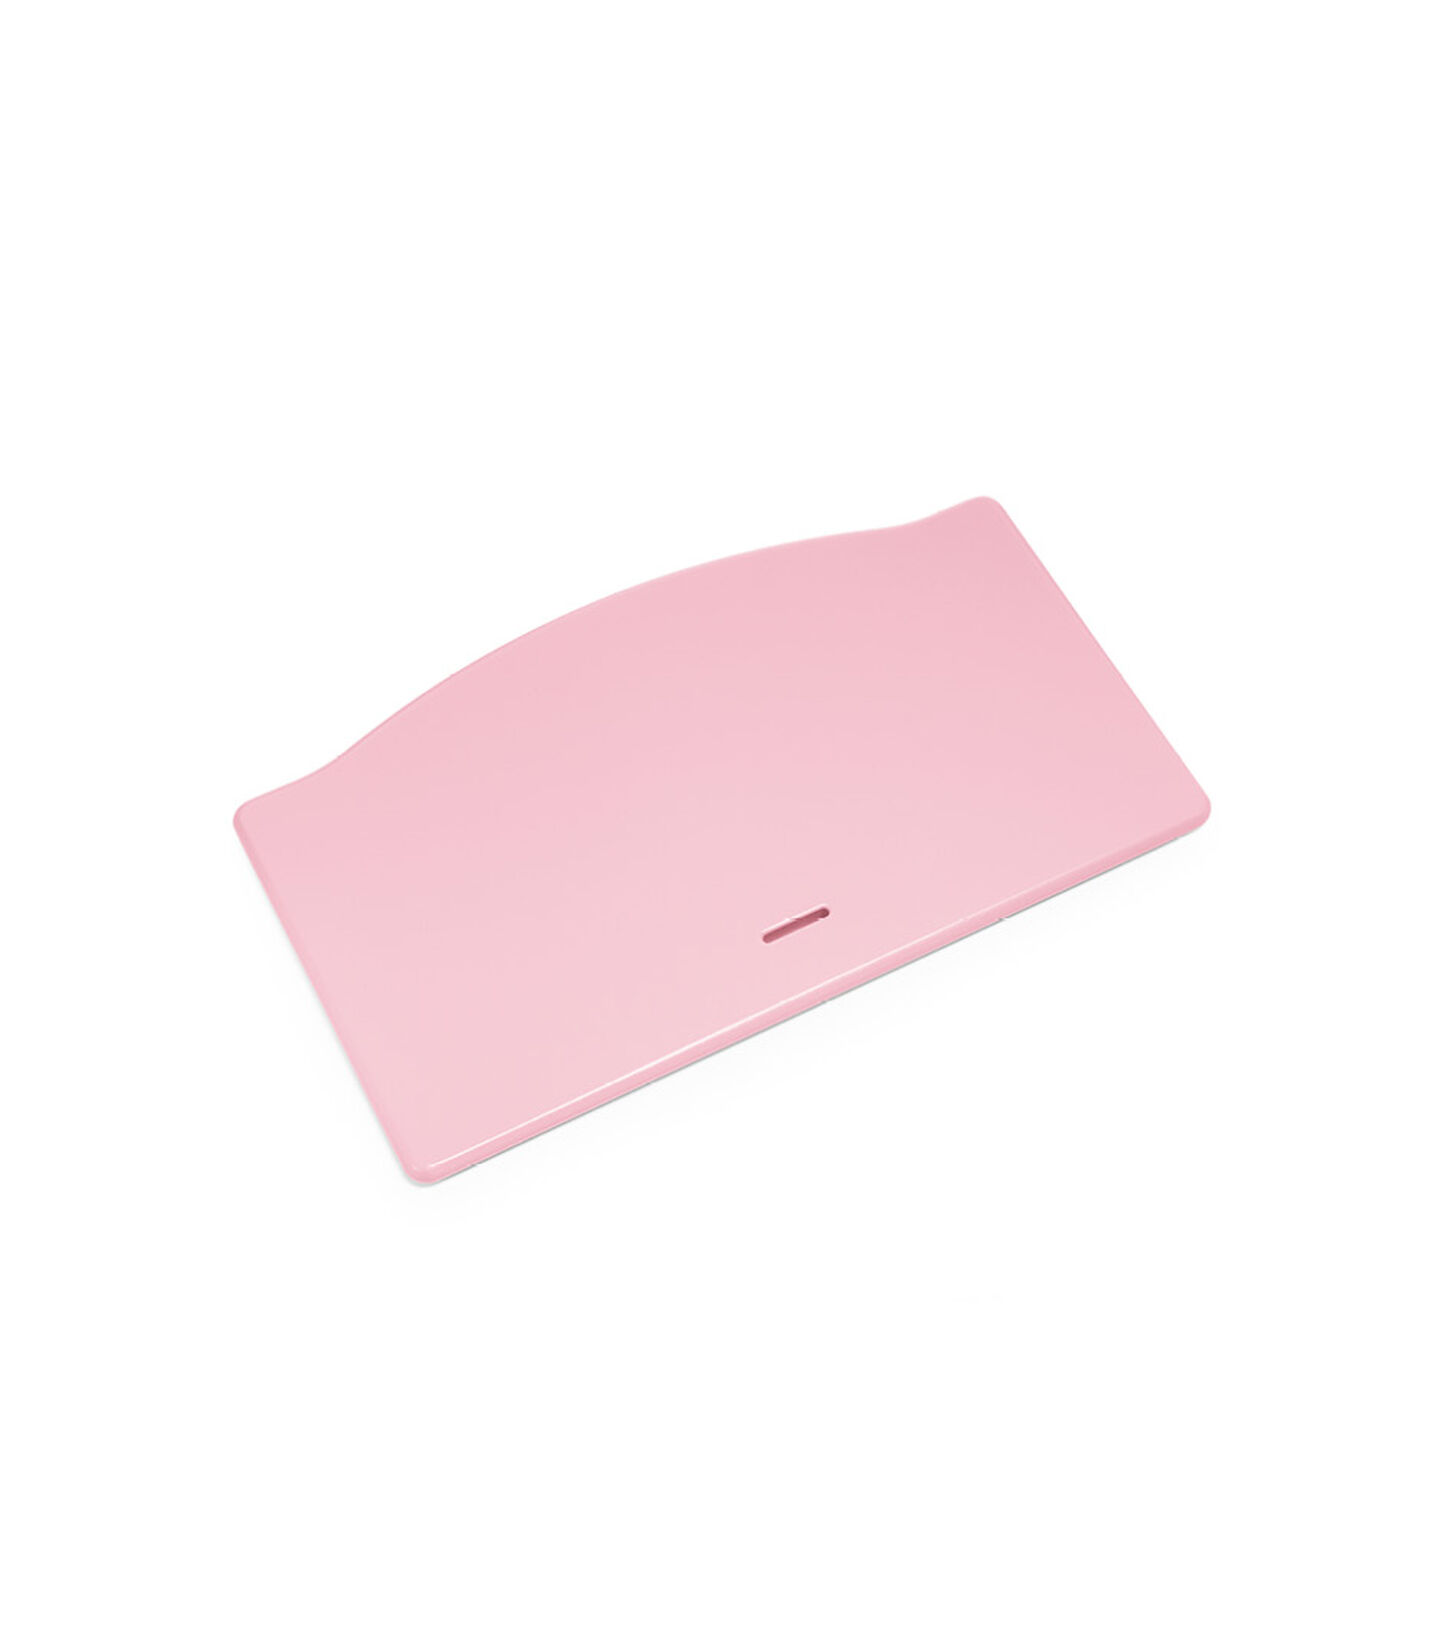 108830 Tripp Trapp Seat plate Pink (Spare part). view 2